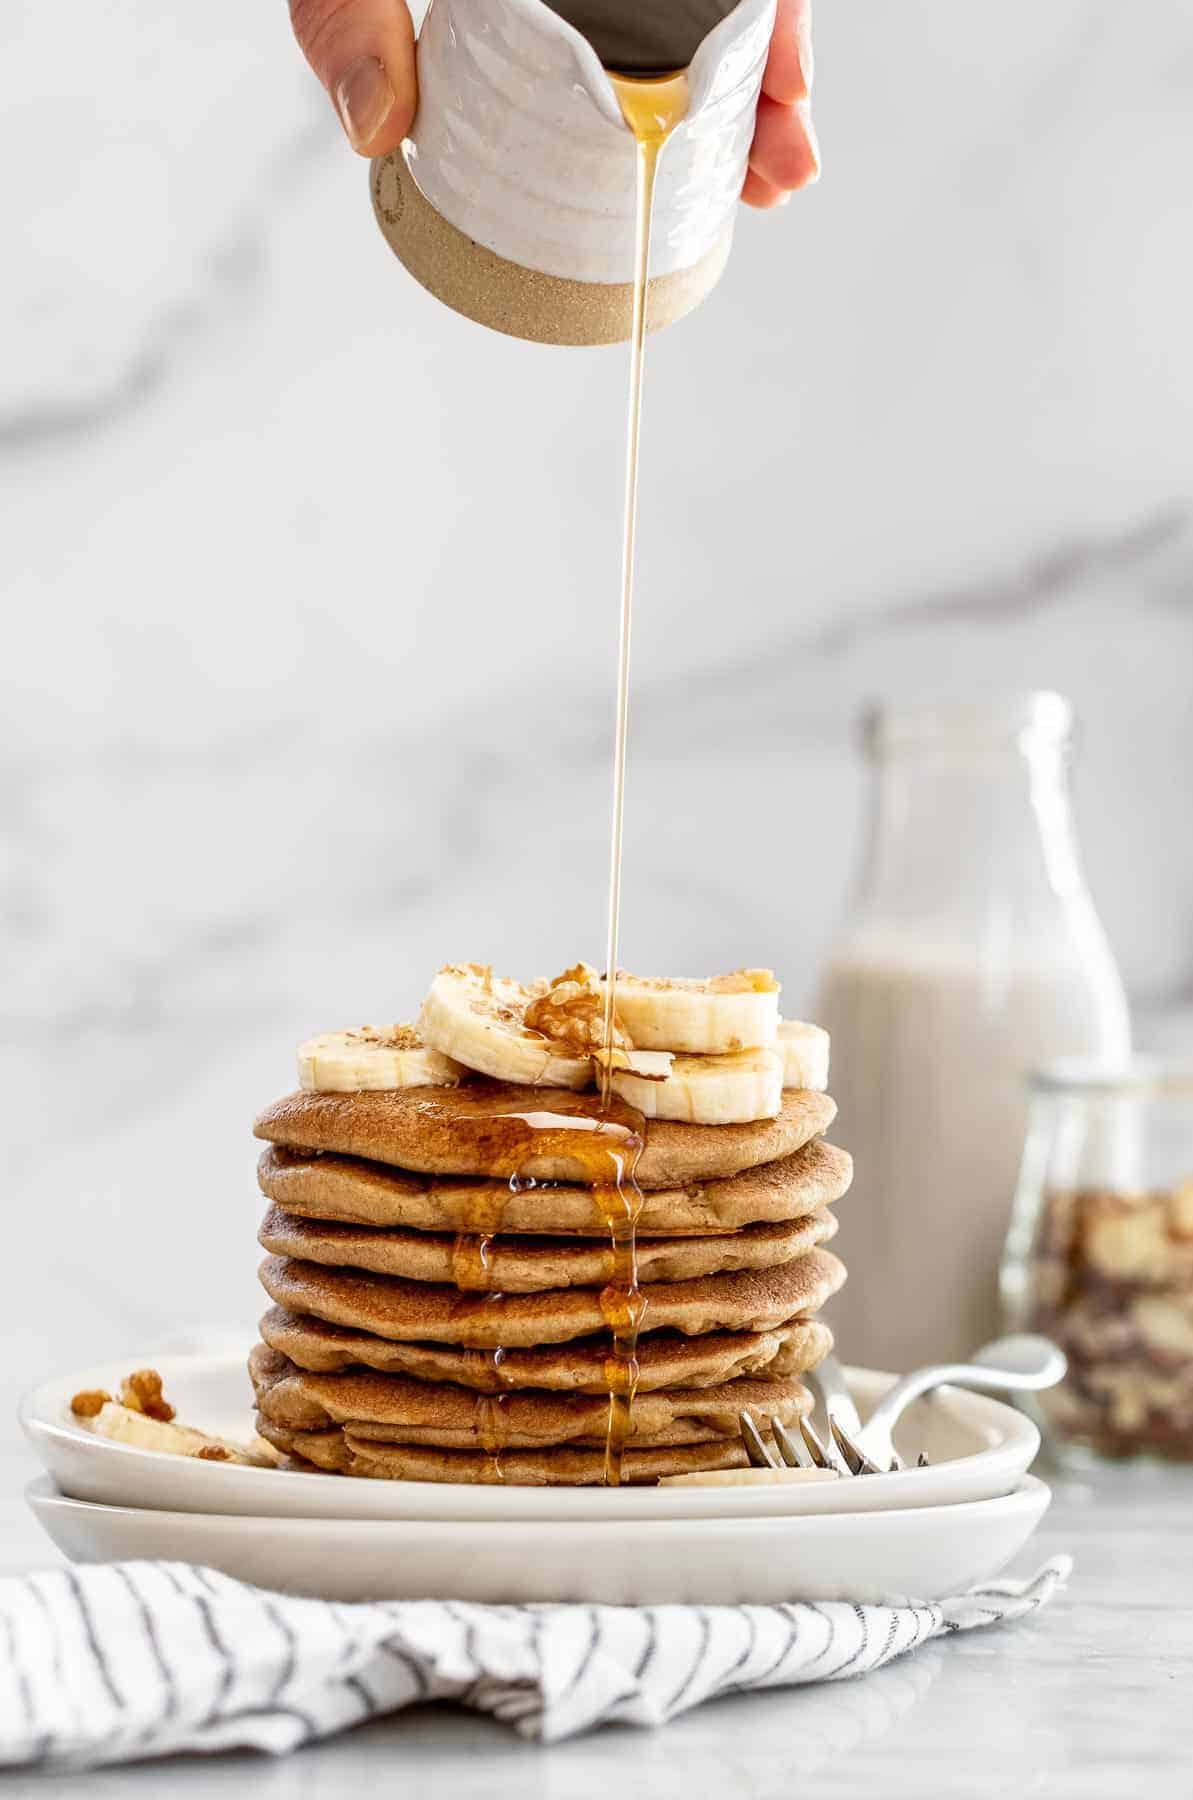 Gluten free banana pancakes with maple syrup getting poured on top.